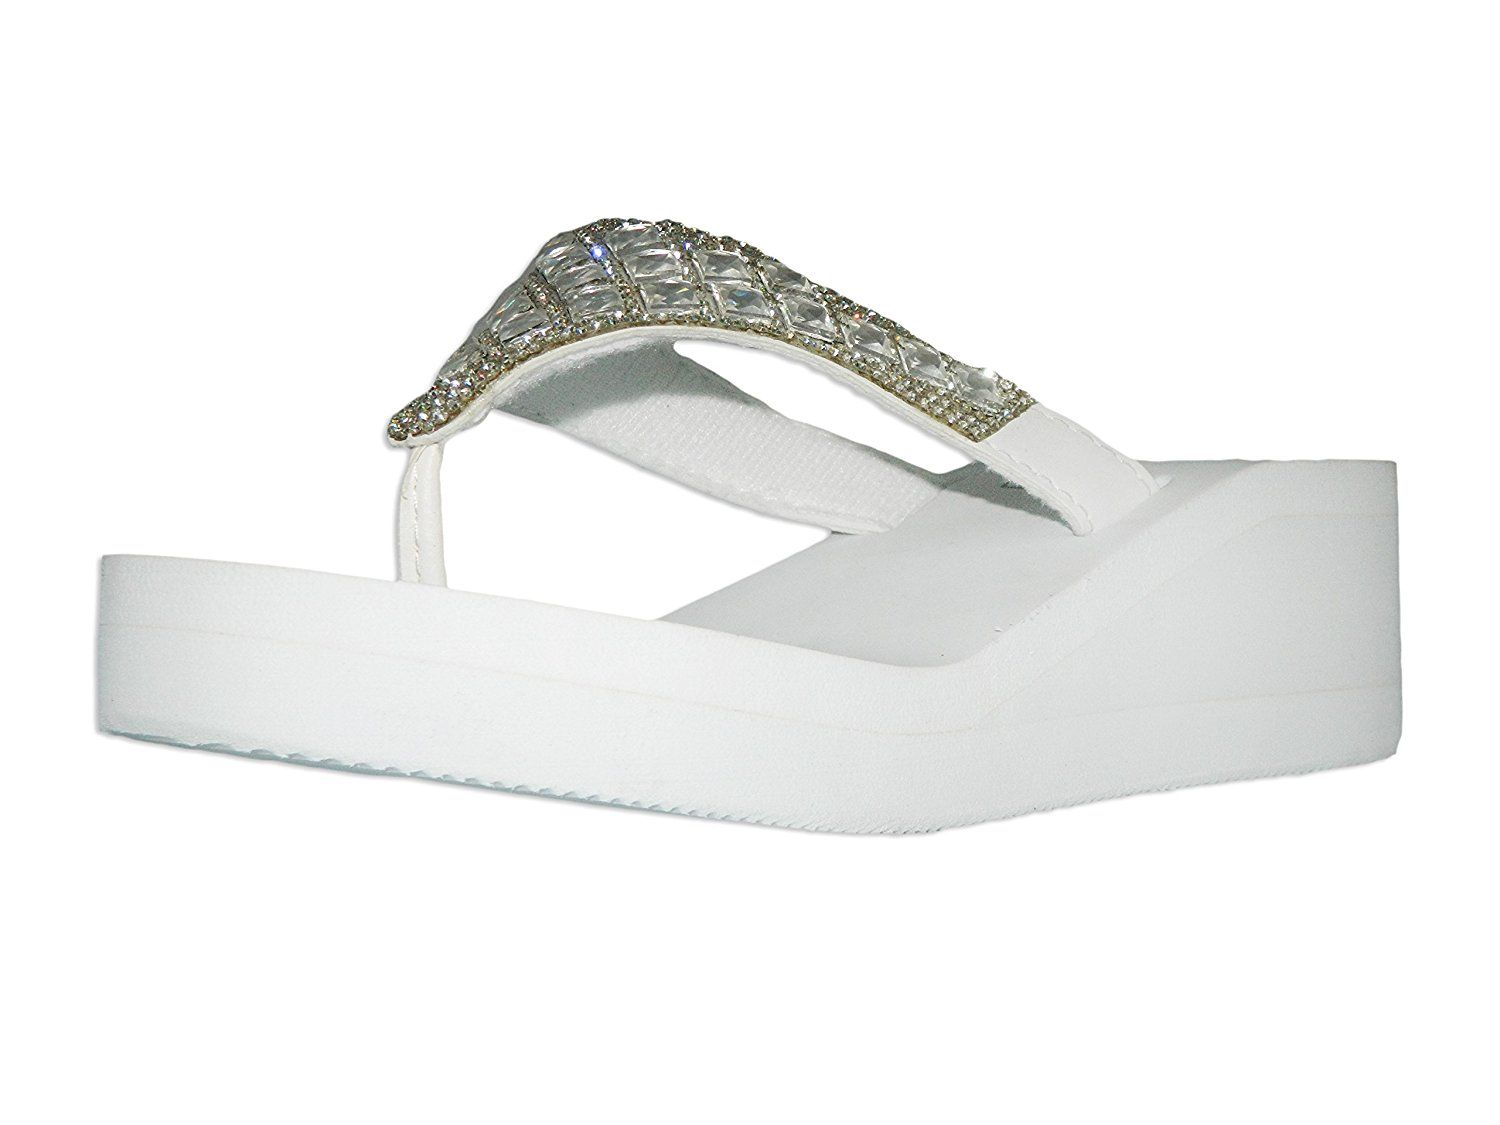 dac572b23d4f VICTORIA ADAMES Gina Womens Shoes White Ladies Wedges Sandals Casual Flip  Flop   Be sure to check out this helpful article.  shoelover